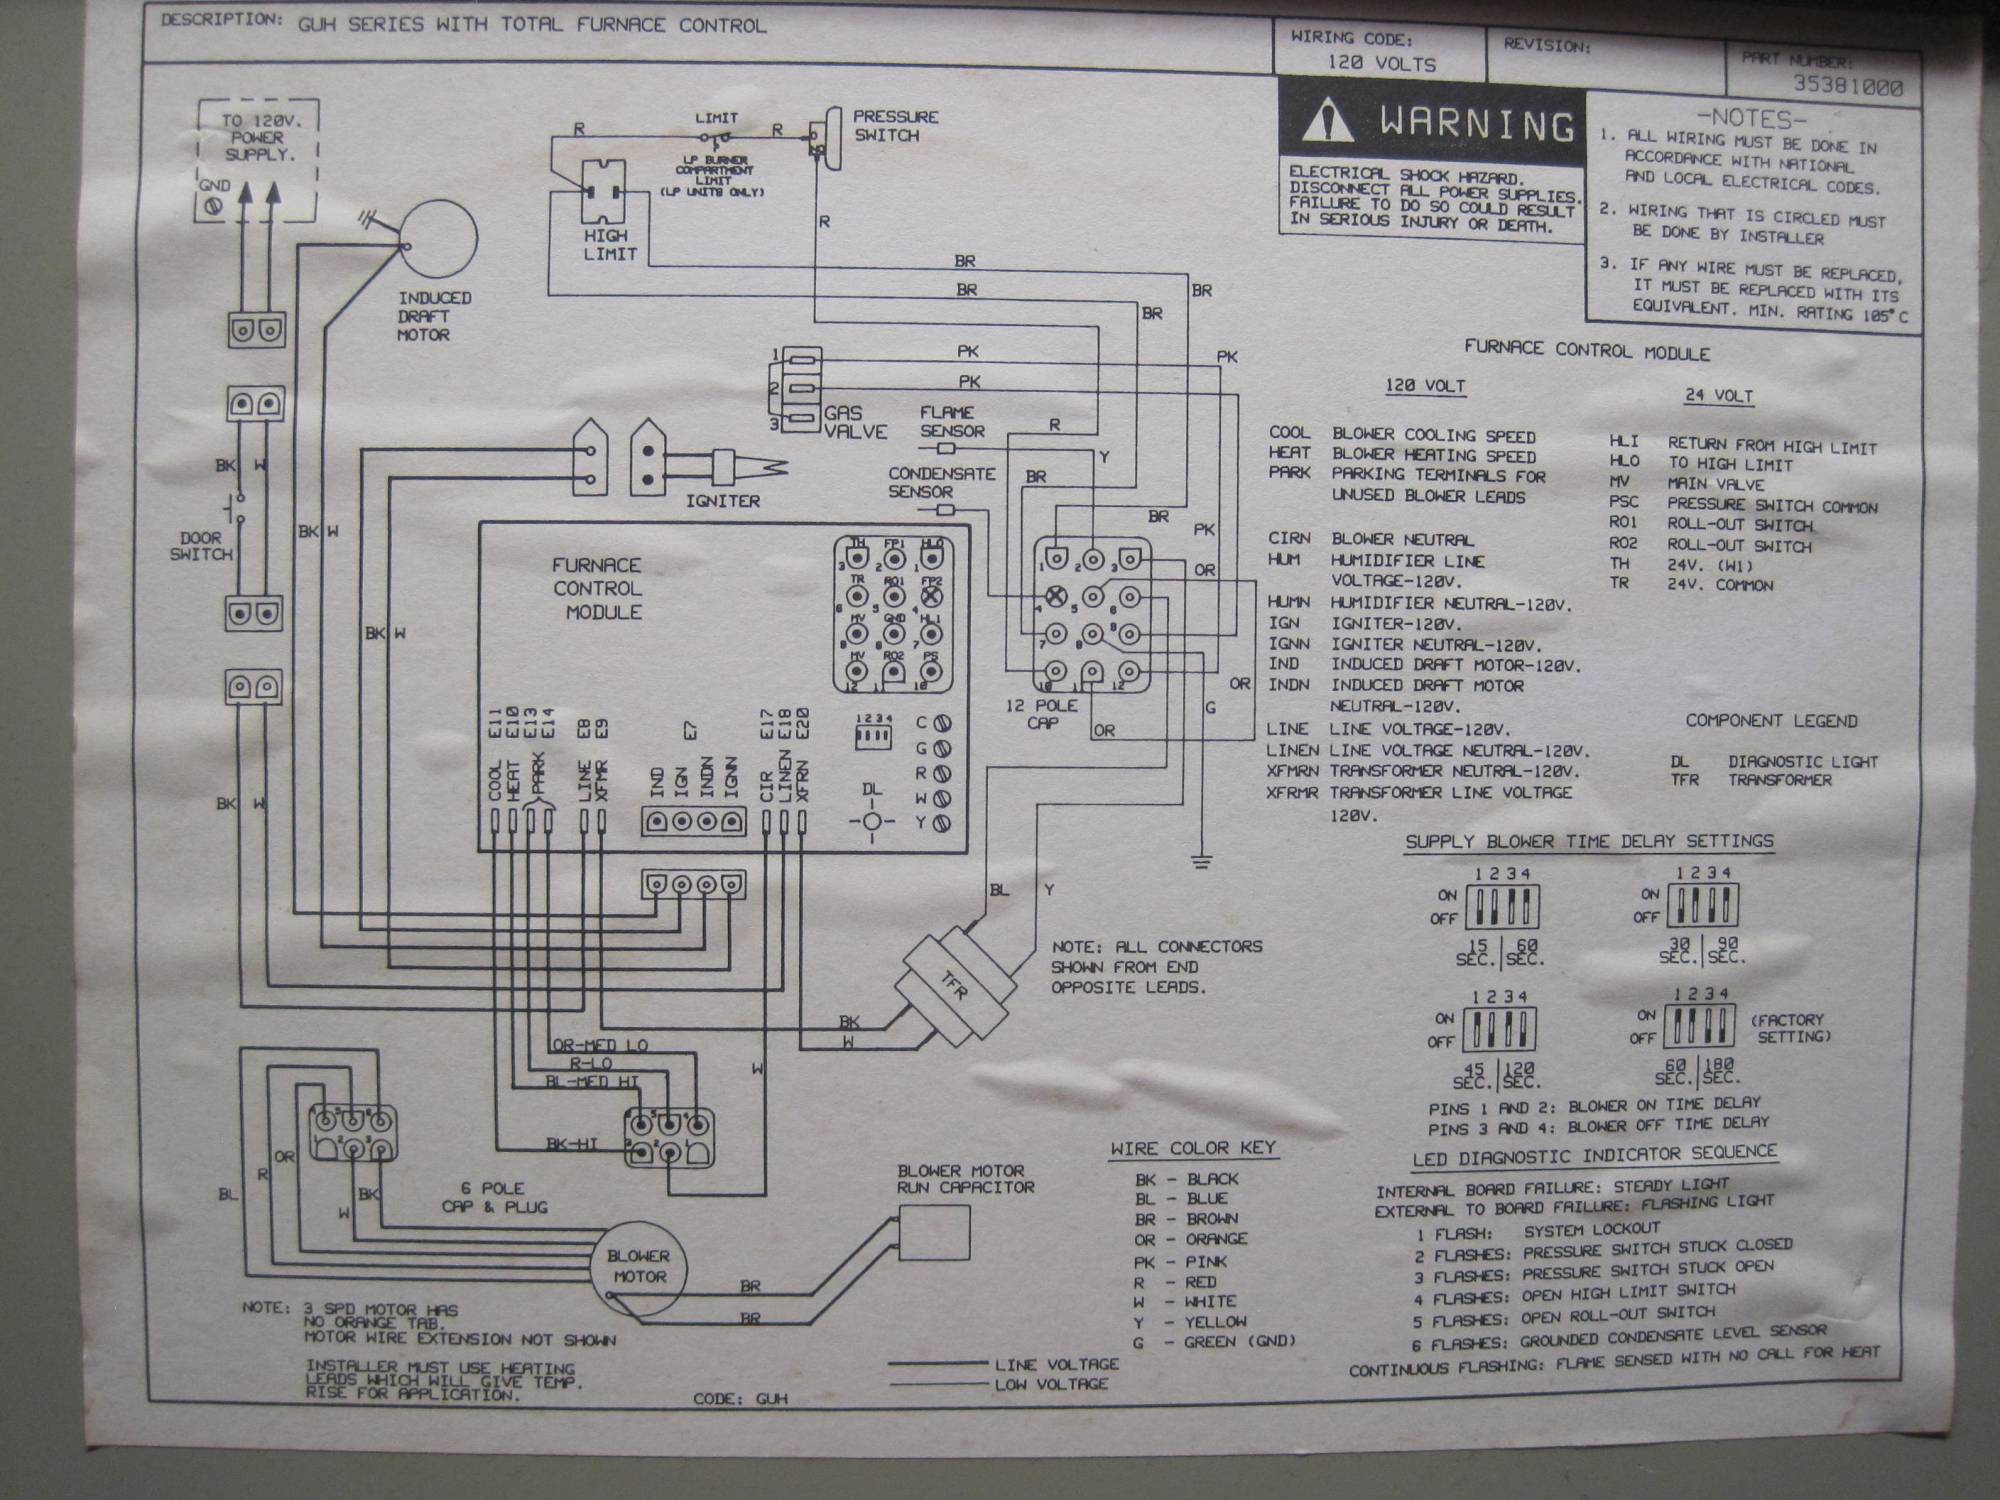 hight resolution of furnace control board wiring diagram oil furnace control wiring diagram furnace control wiring diagram bryant furnace